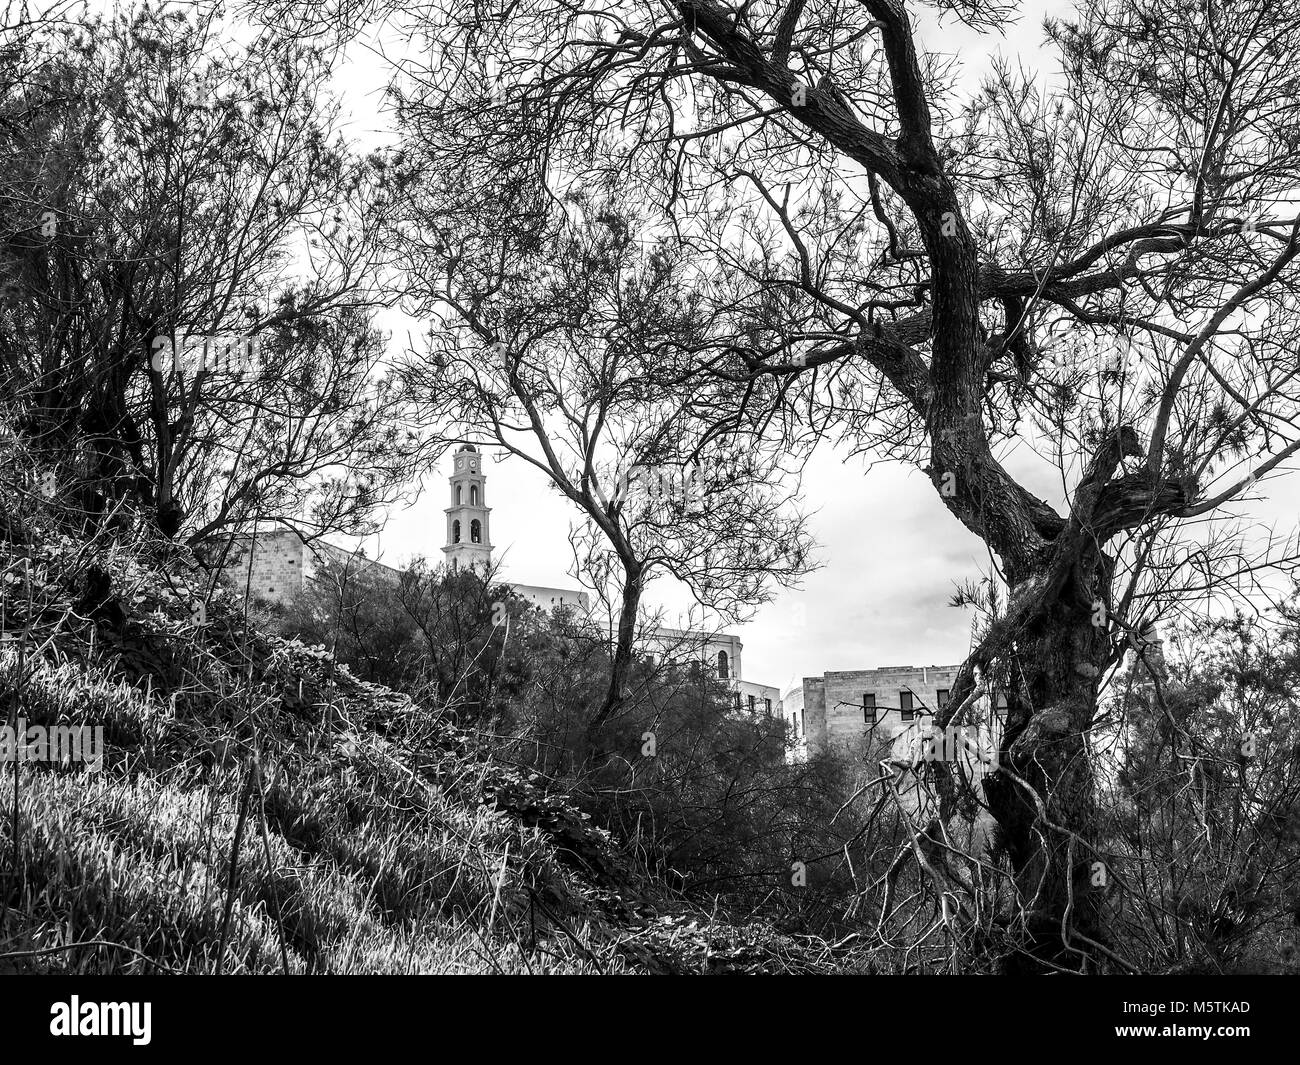 St. Peter's Church between trees in Tel Aviv, Old Jaffa, Israel - Stock Image